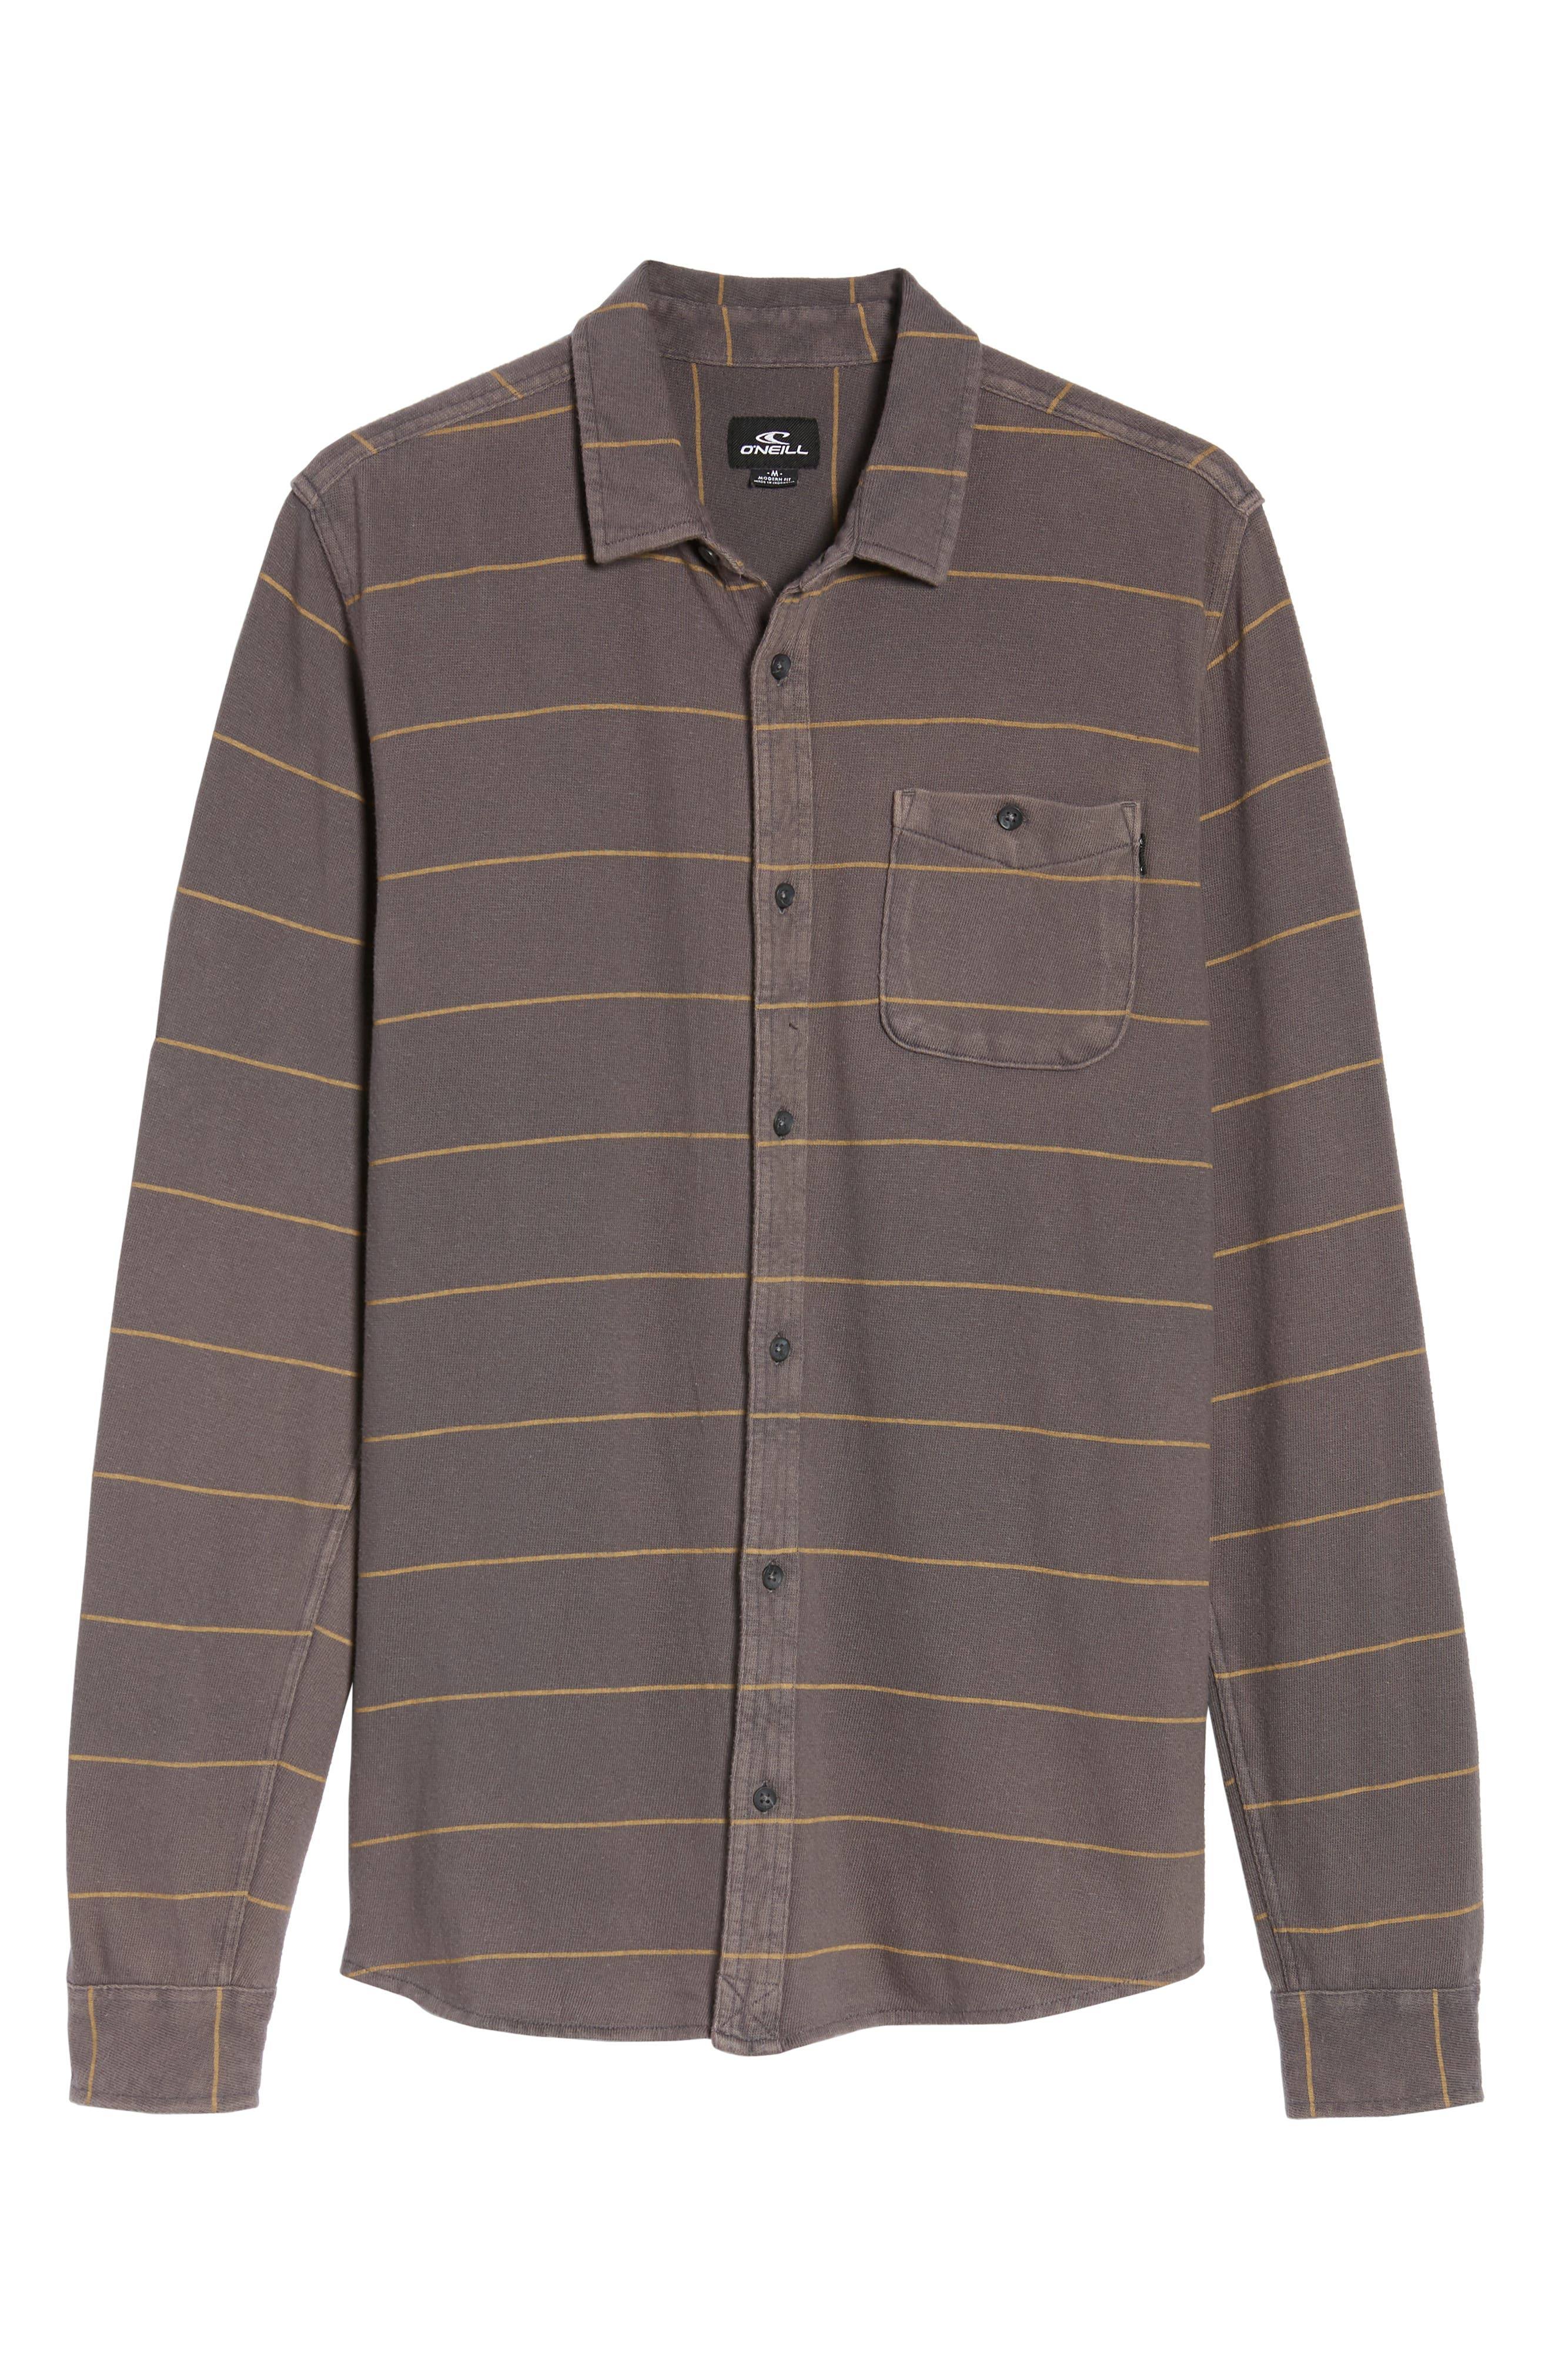 Cowell Knit Button-Up Shirt,                             Alternate thumbnail 6, color,                             020